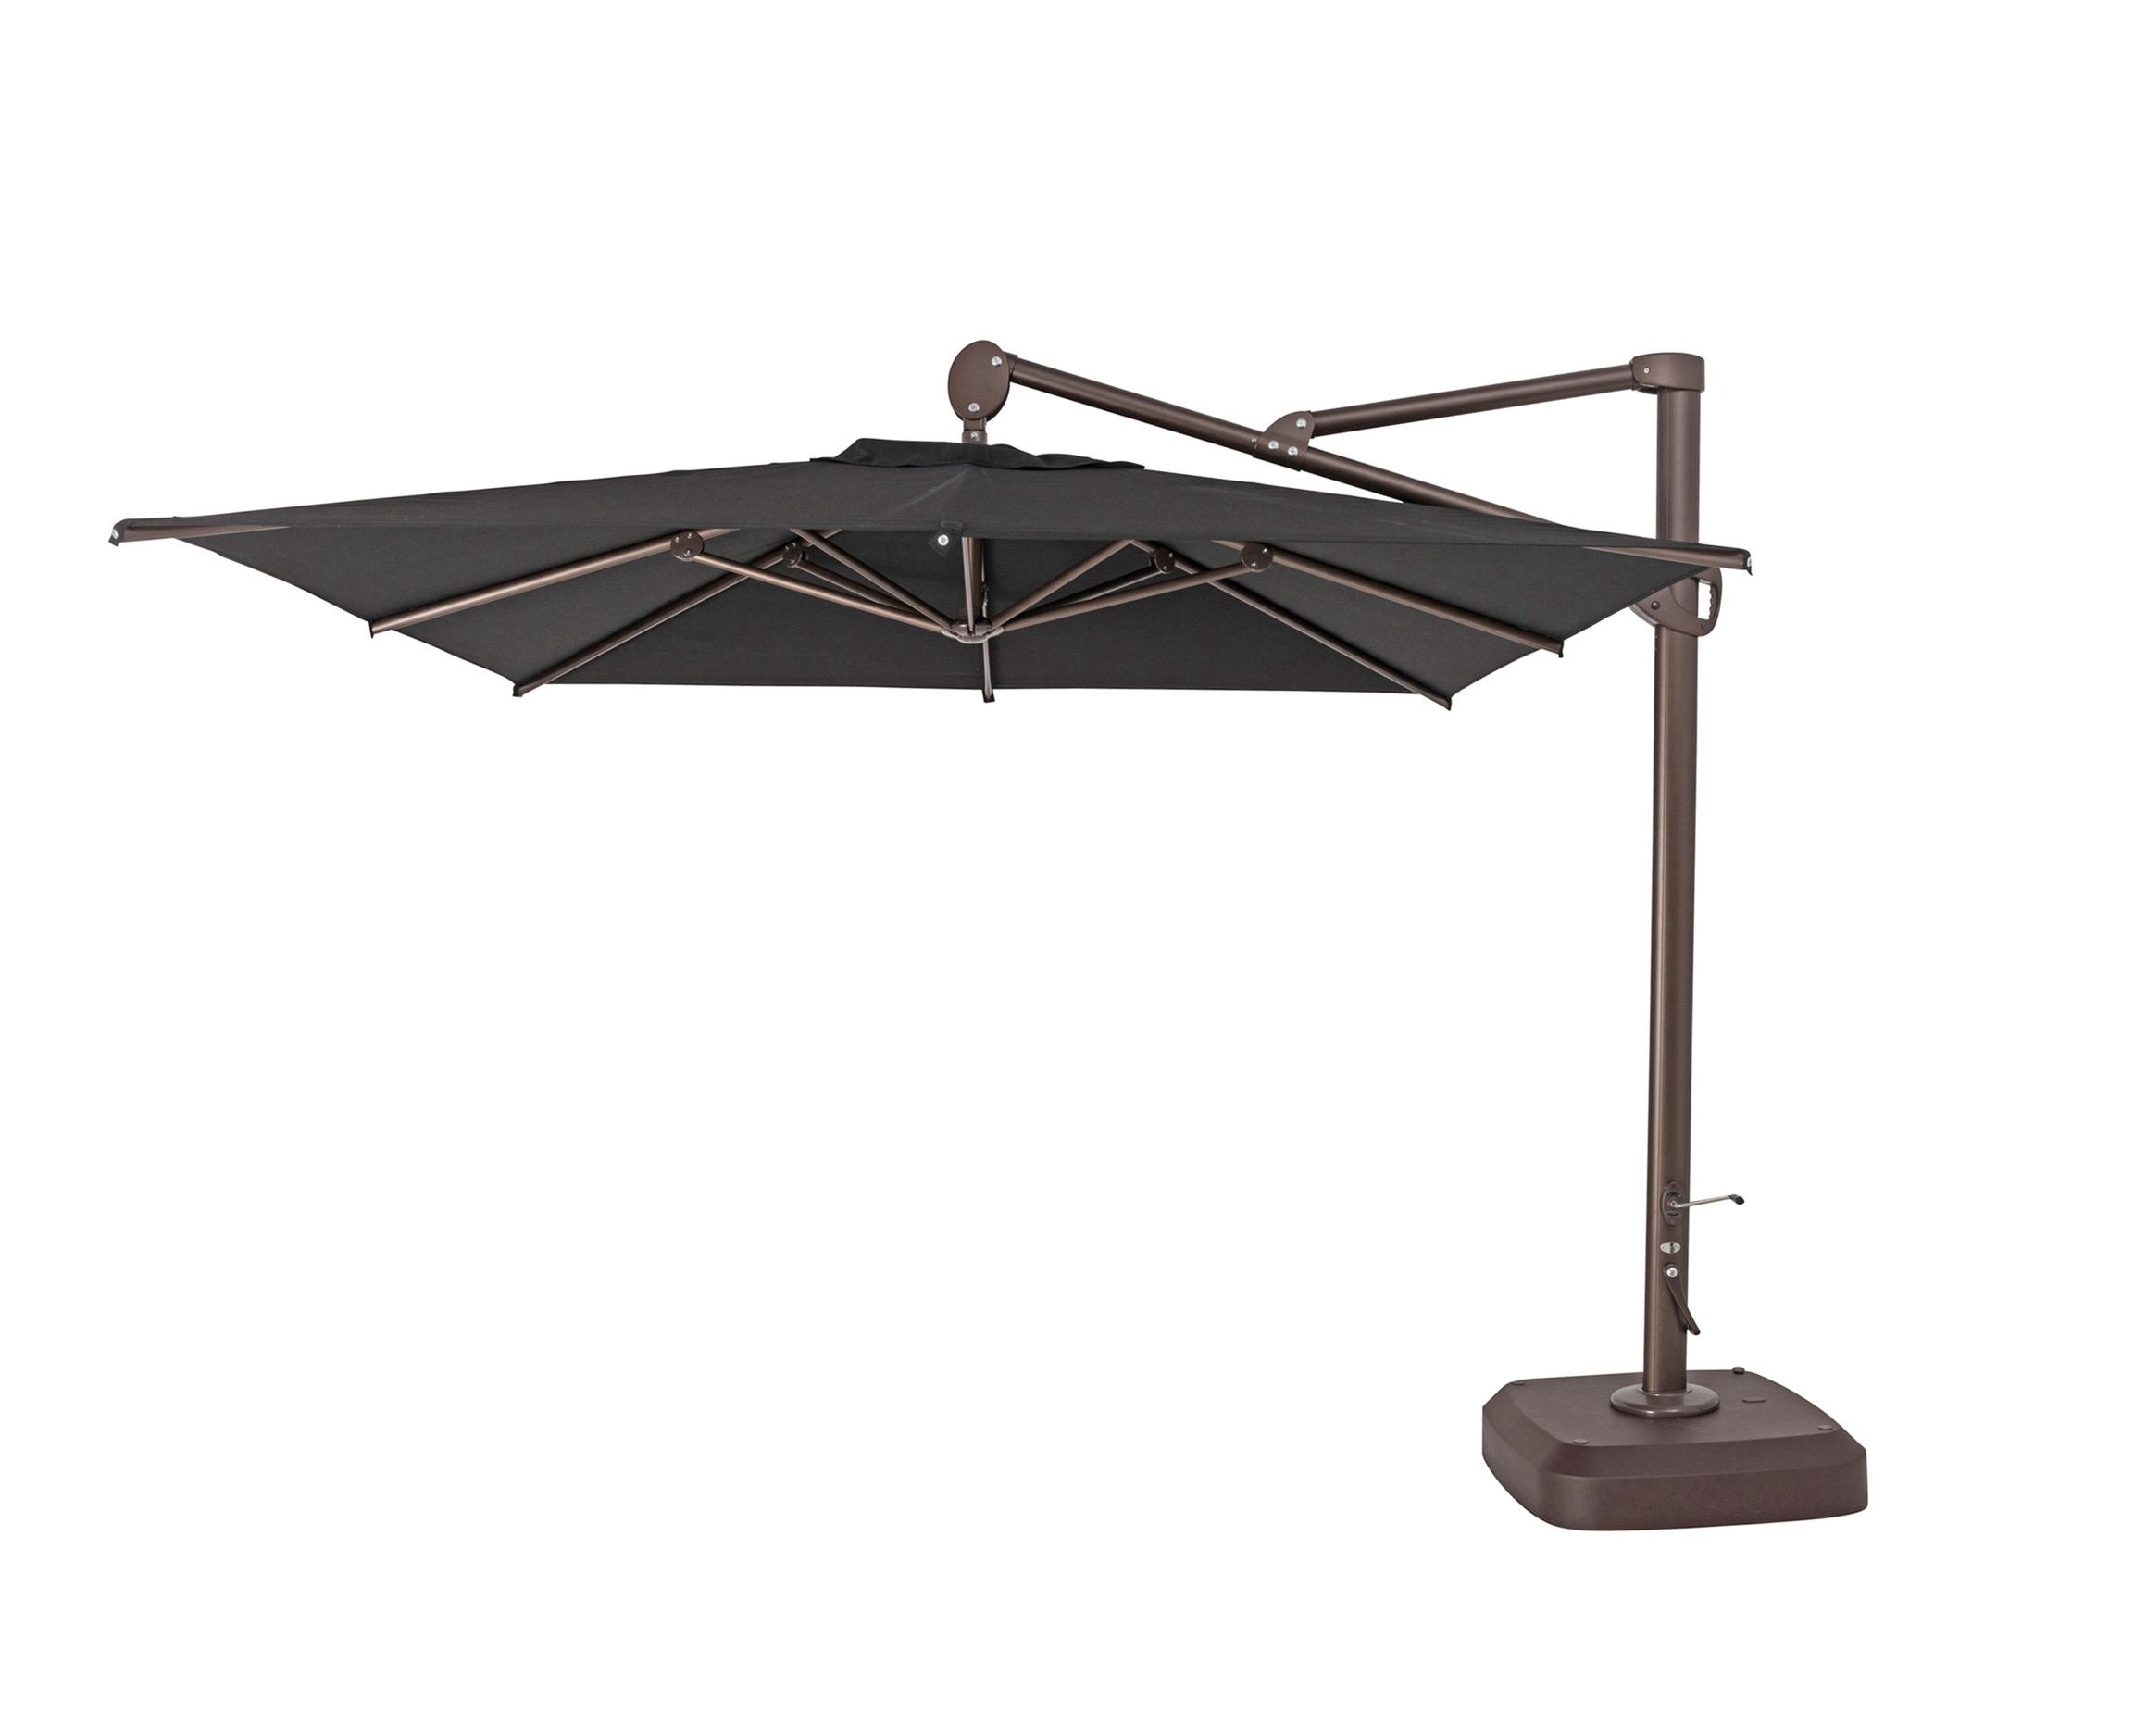 10' Square Cantilever Umbrella Pertaining To Most Recently Released Spitler Square Cantilever Umbrellas (View 13 of 20)